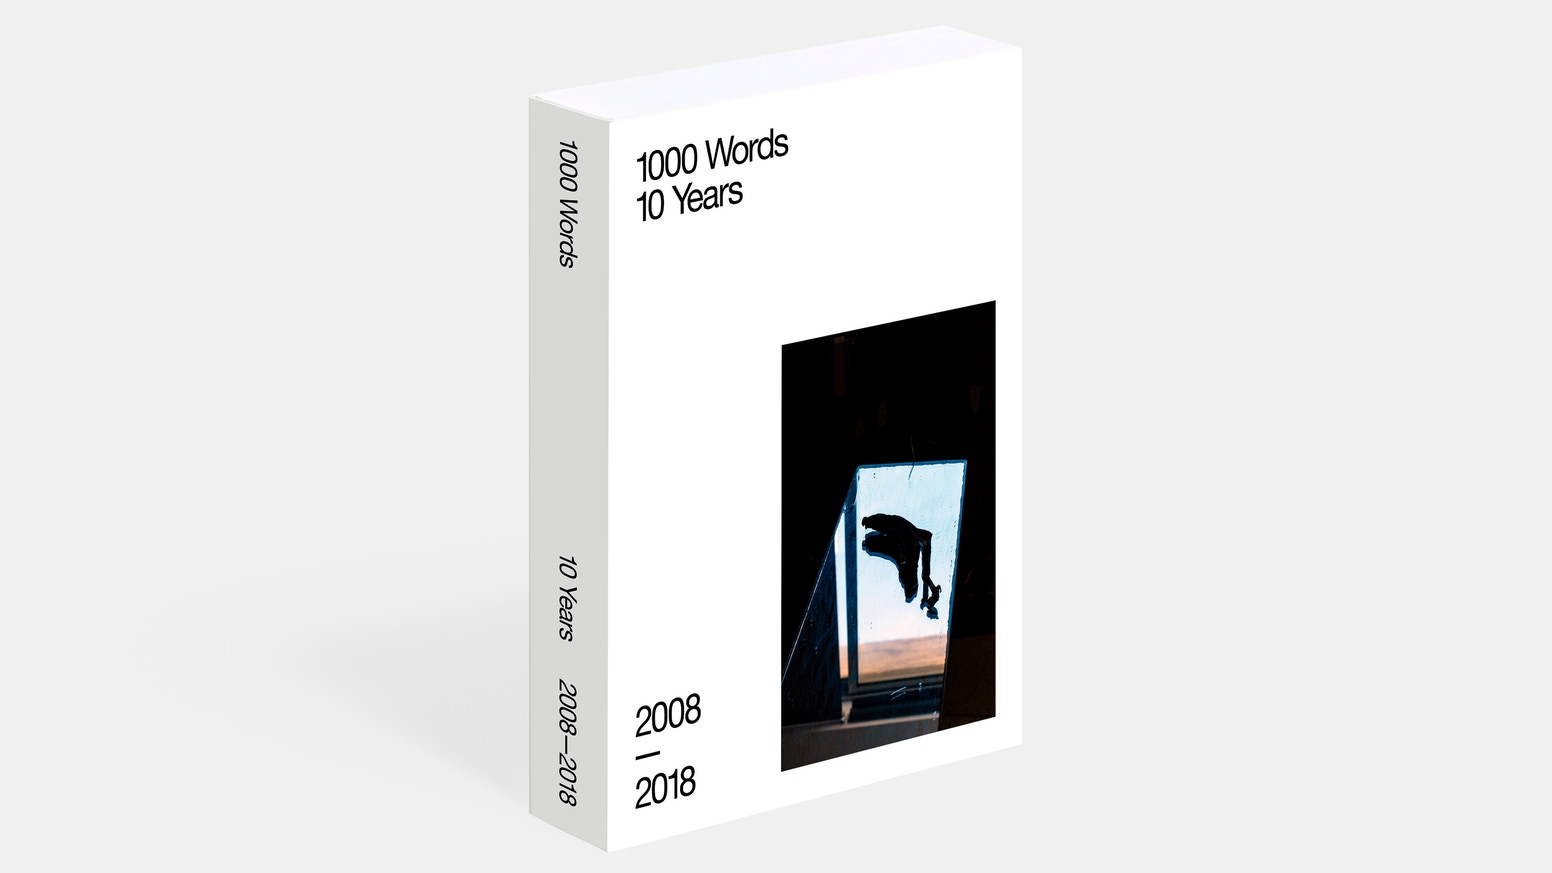 10 Year anniversary print edition of 1000 Words, celebrating both established and emerging artists working within photography.